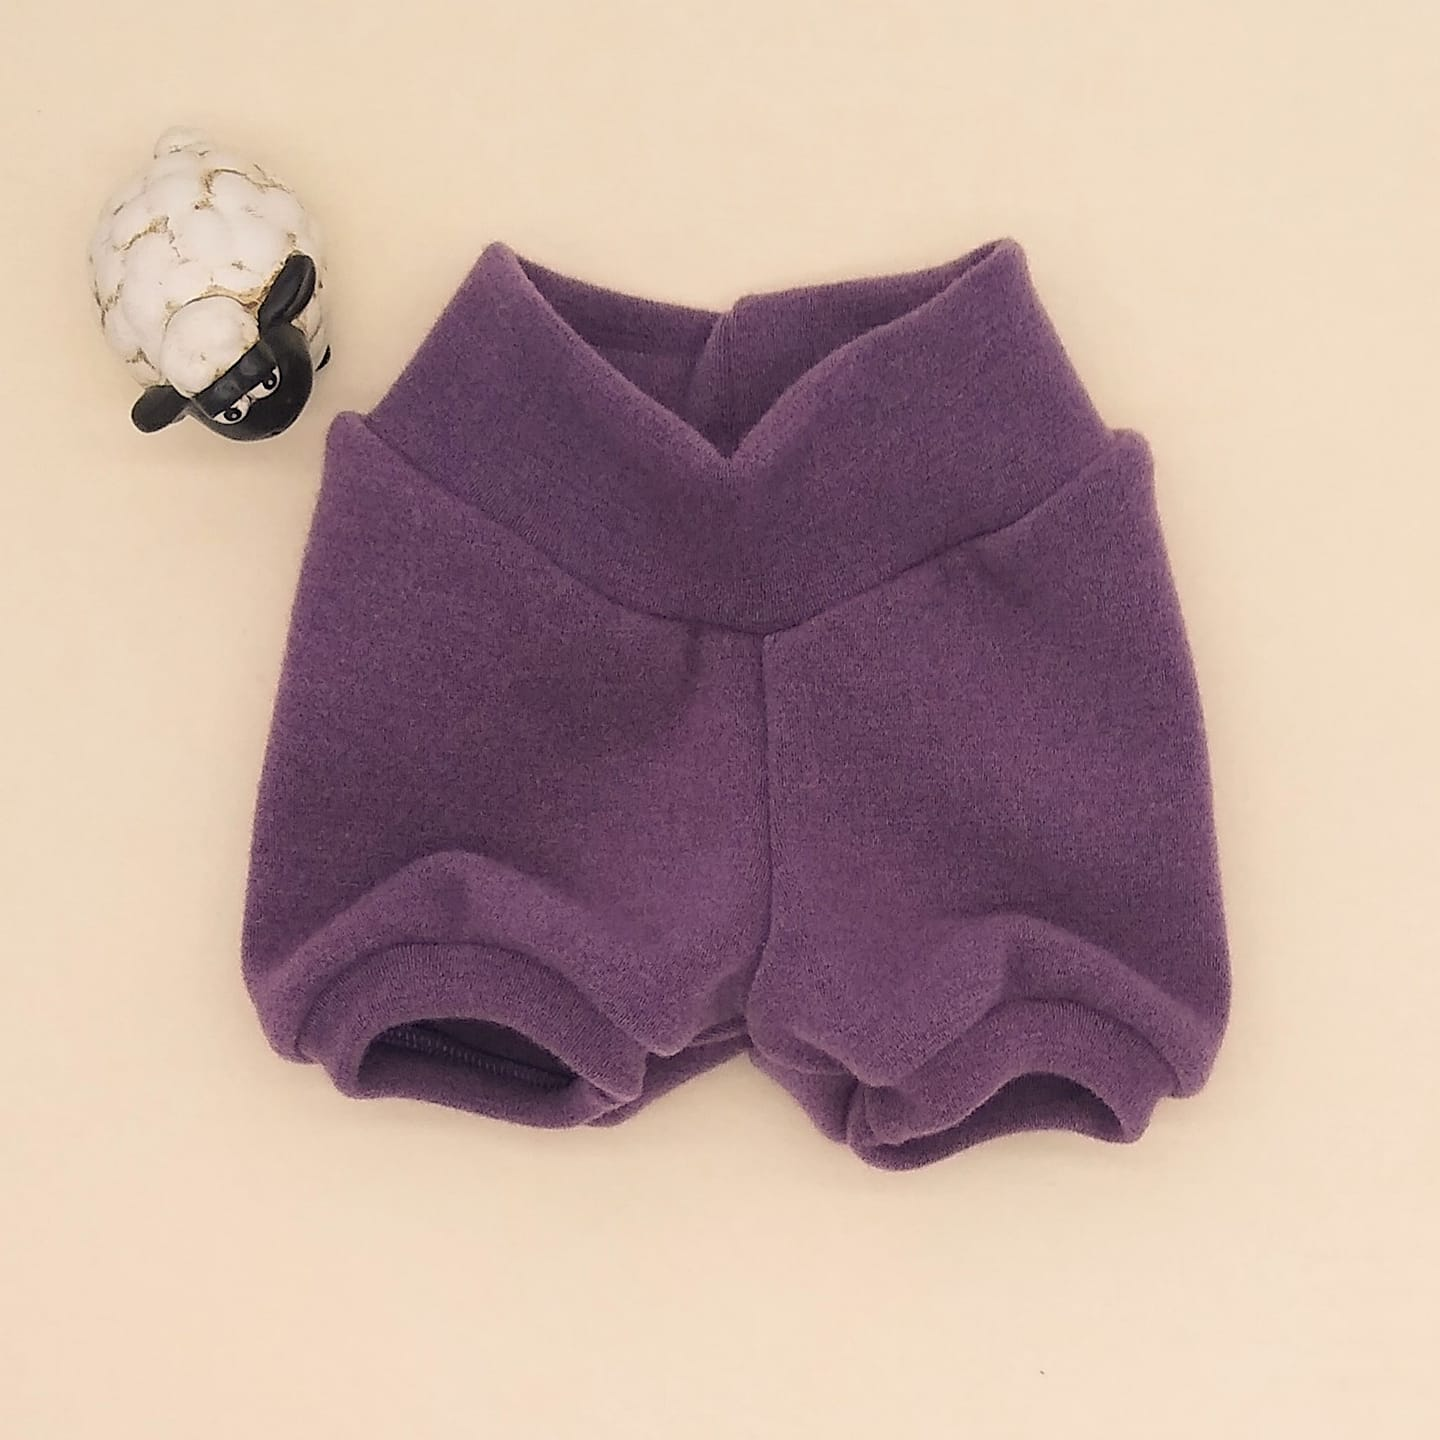 WCW Wool Interlock Bubble Shorties Diaper Cover- Mixed Berries- XS, S, SL, M or ML